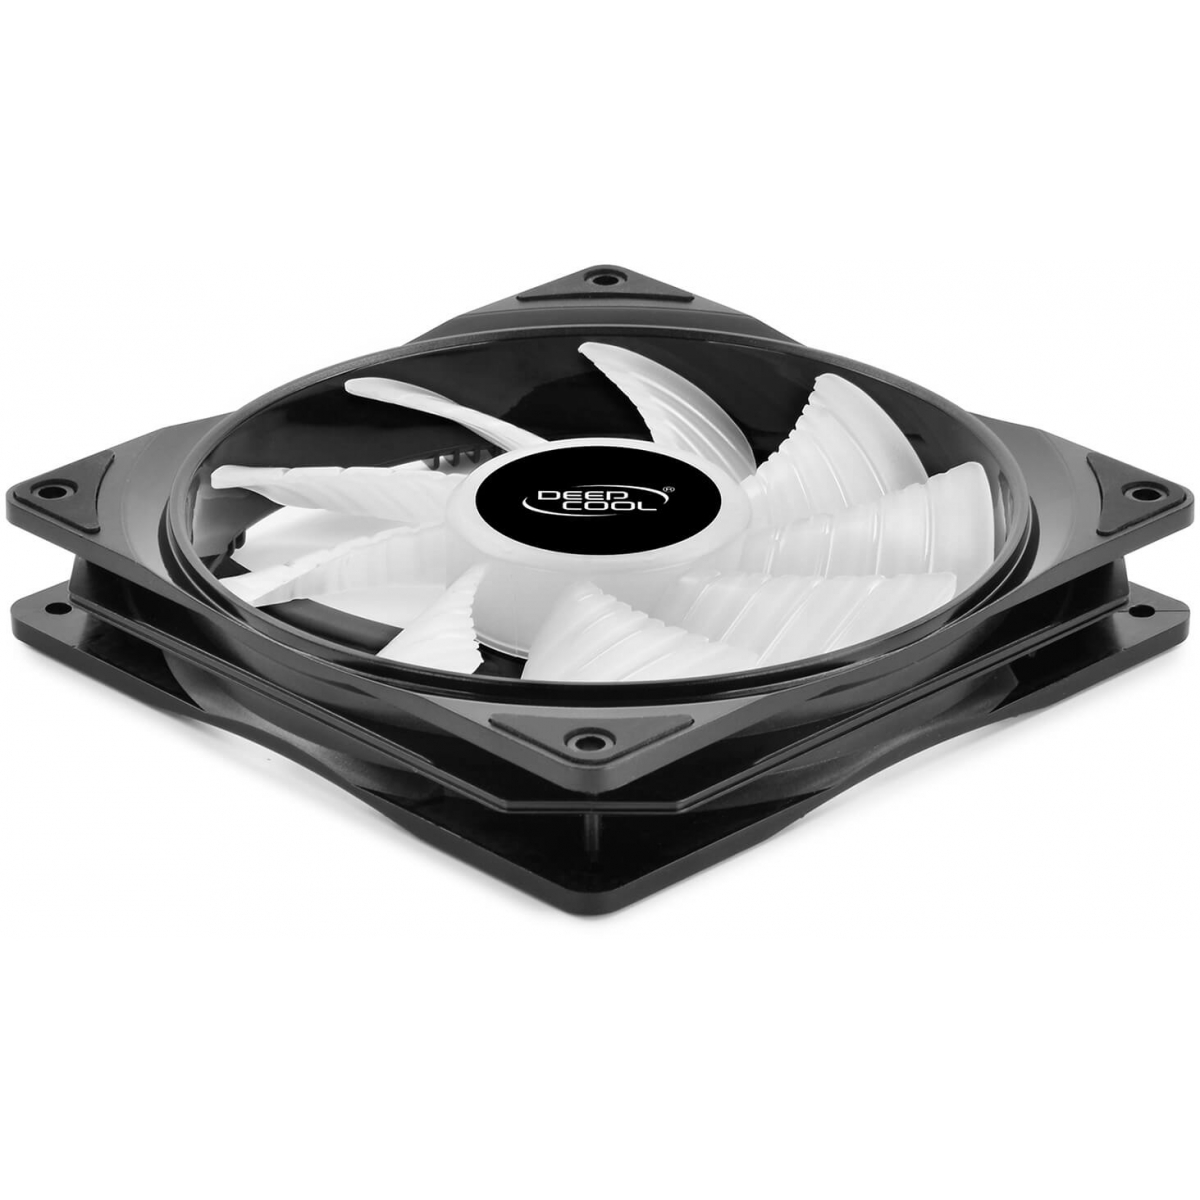 Kit Fan com 2 Unidades Deepcool RF 140 RGB 140mm, DP-FRGB-RF140-2C